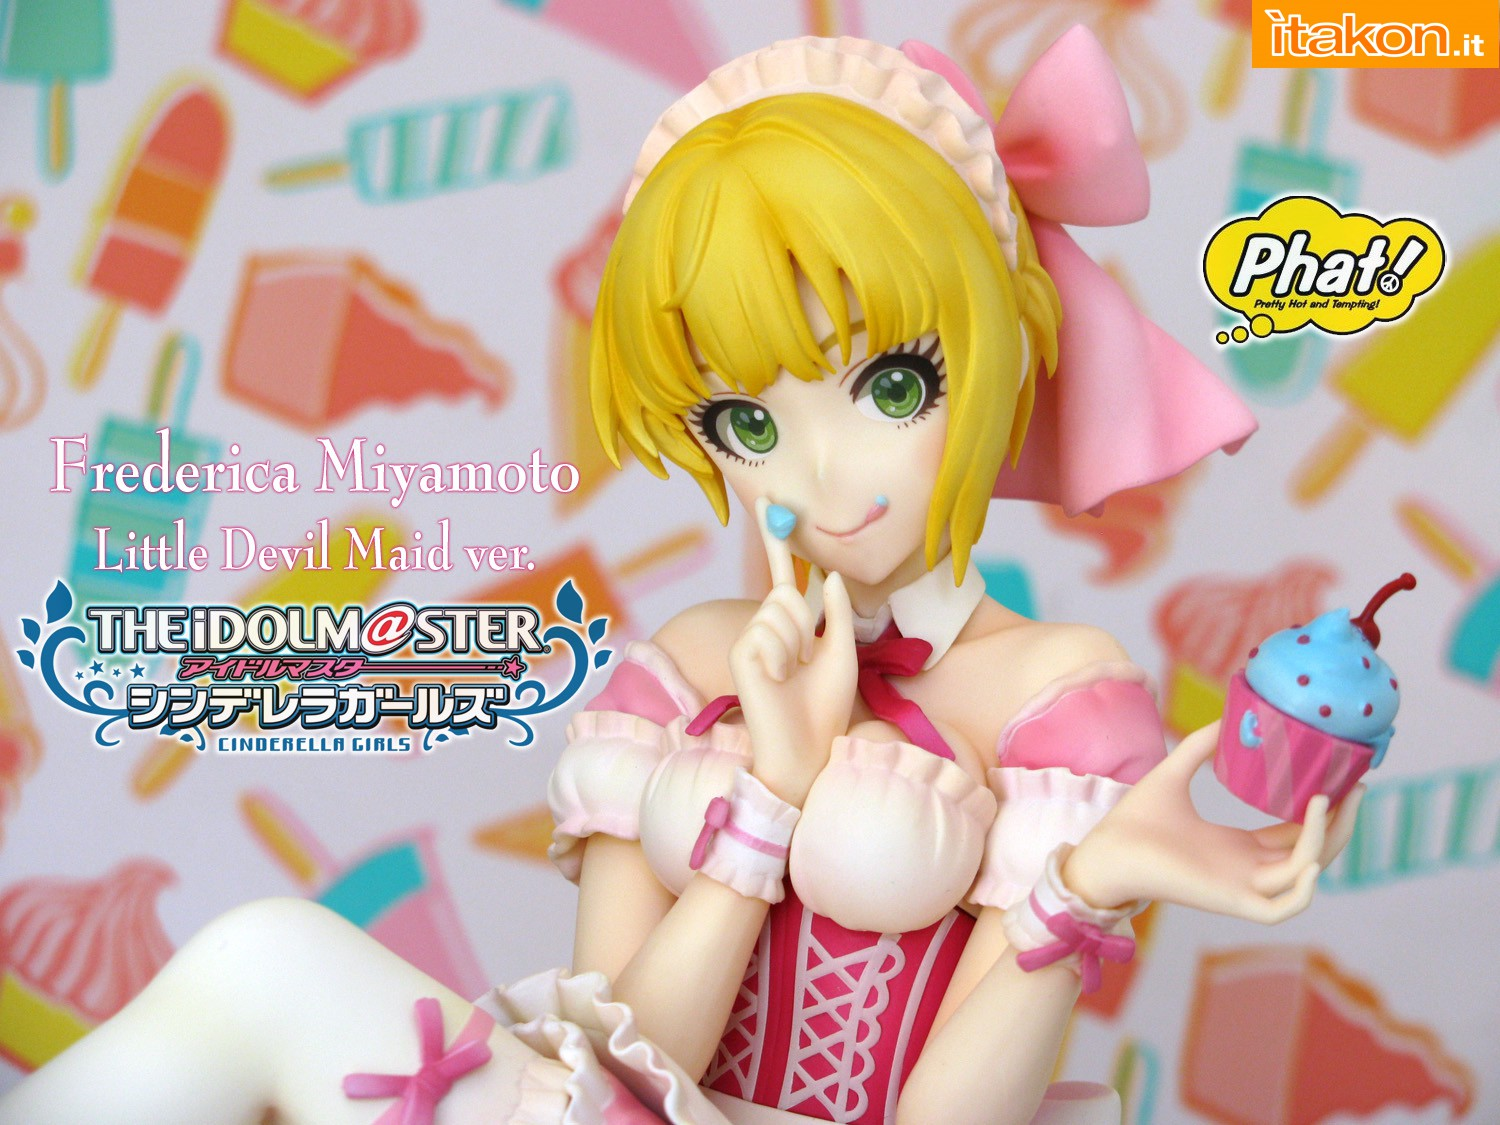 Link a 000 Frederica Miyamoto Little Devil Maid Phat recensione